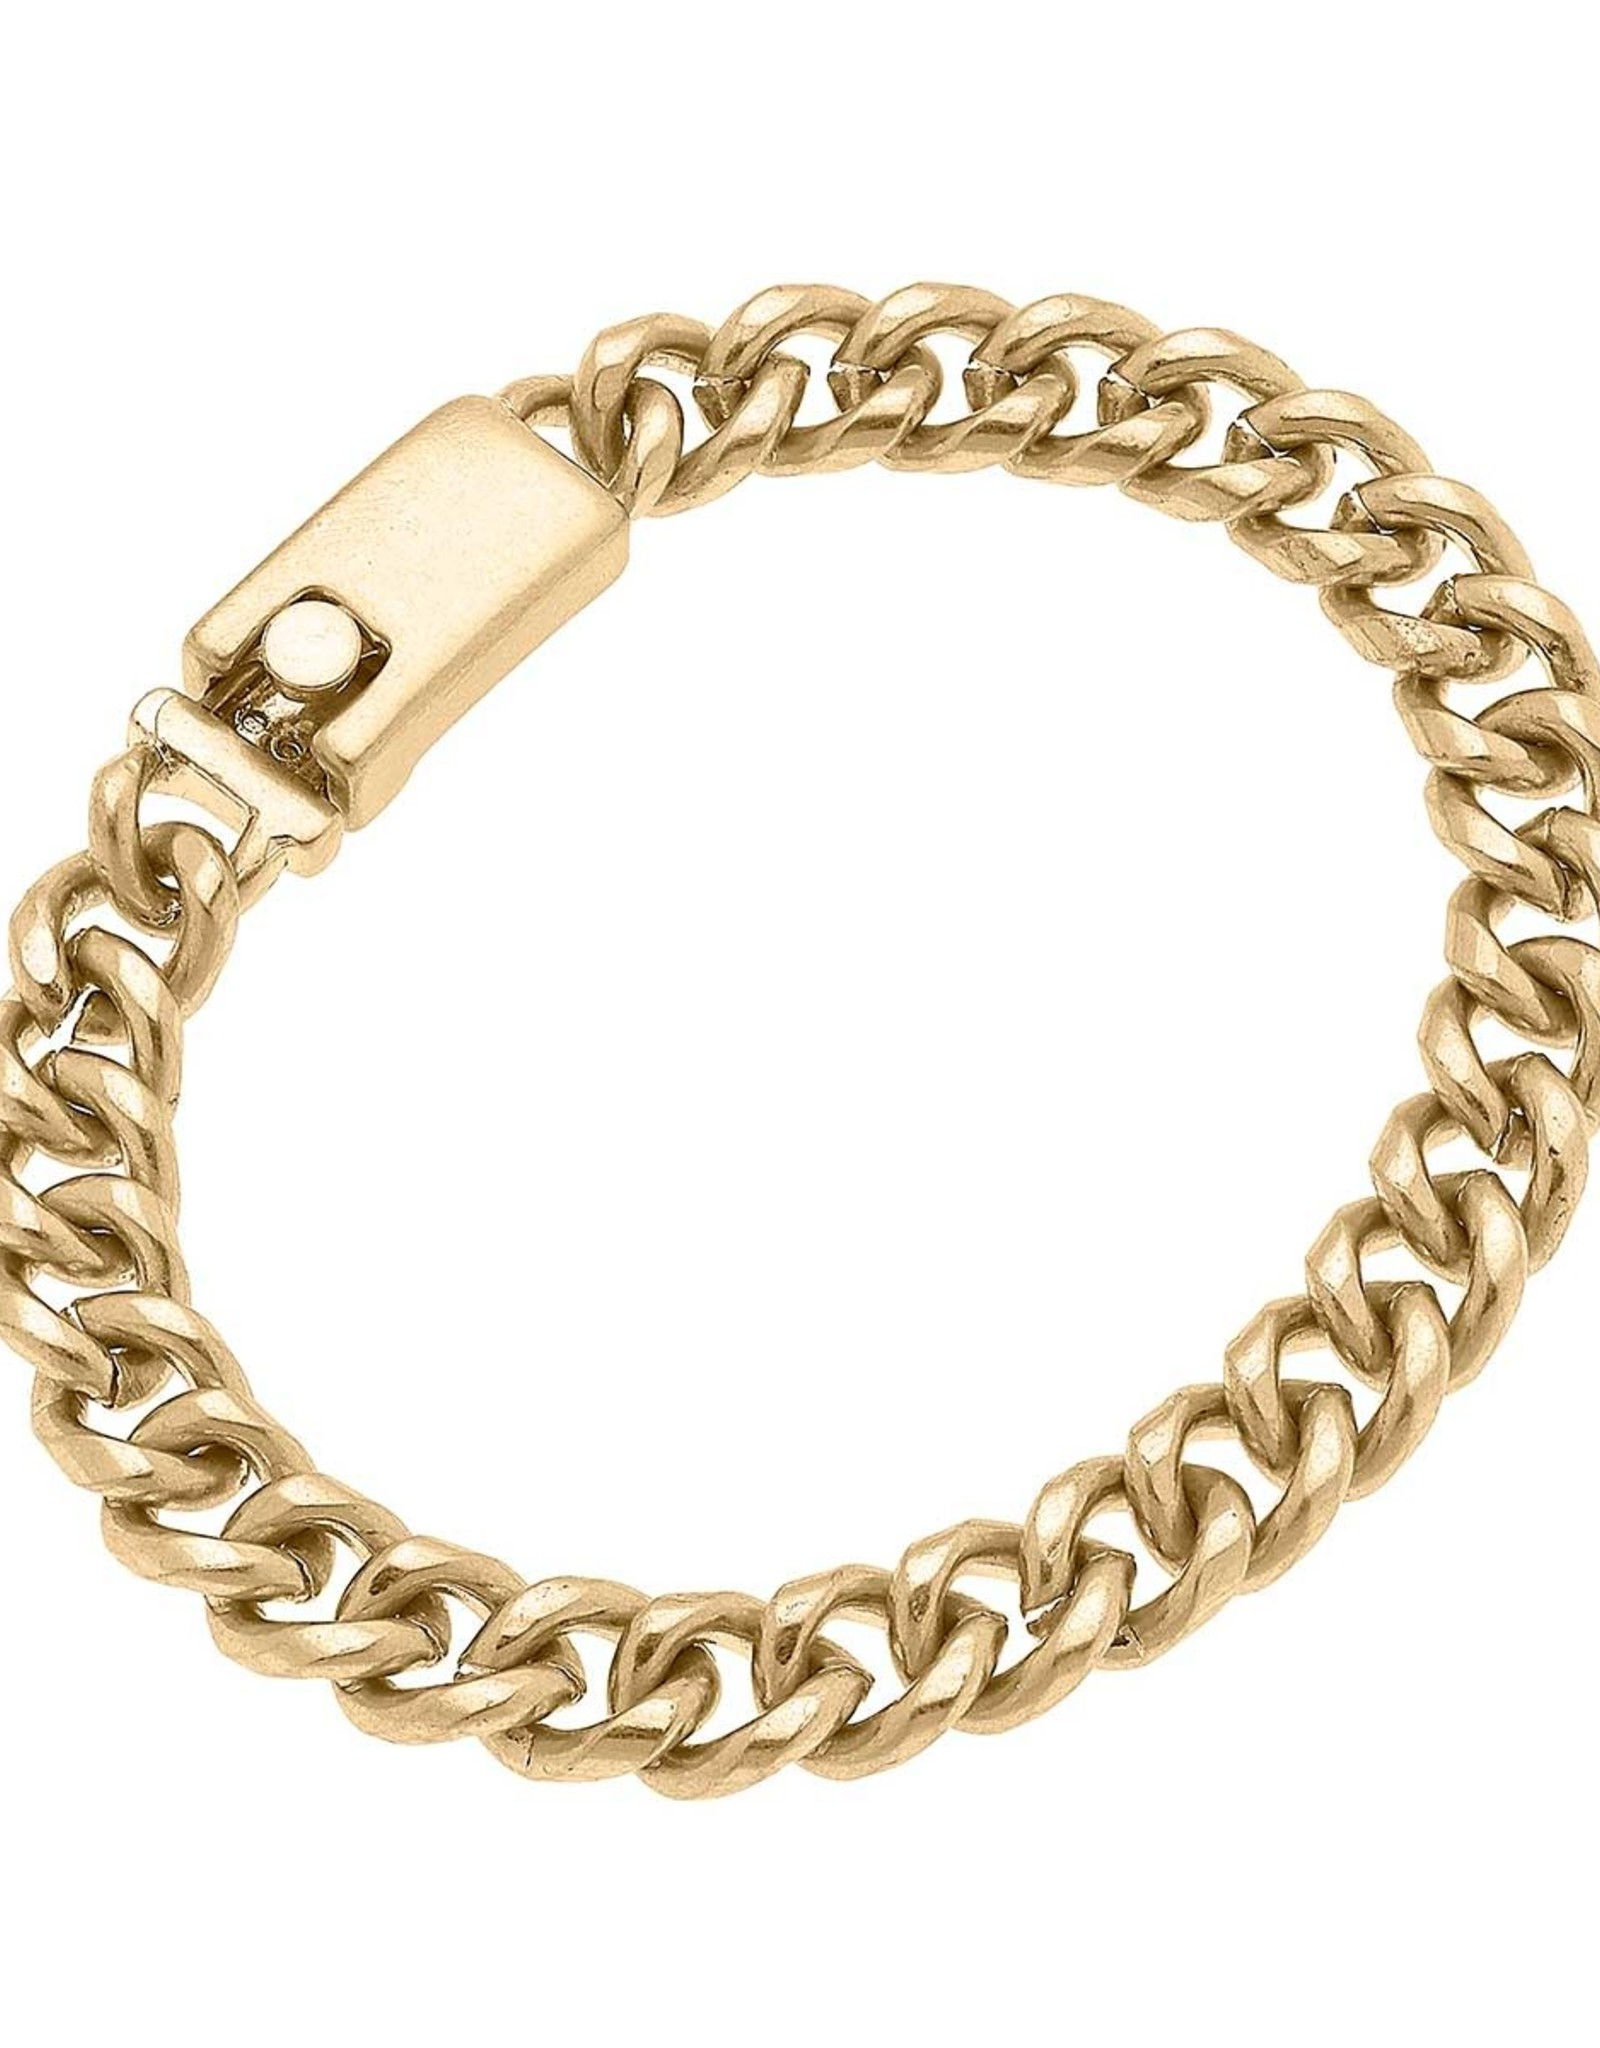 - Delicate Curb Chain Bracelet in Worn Gold